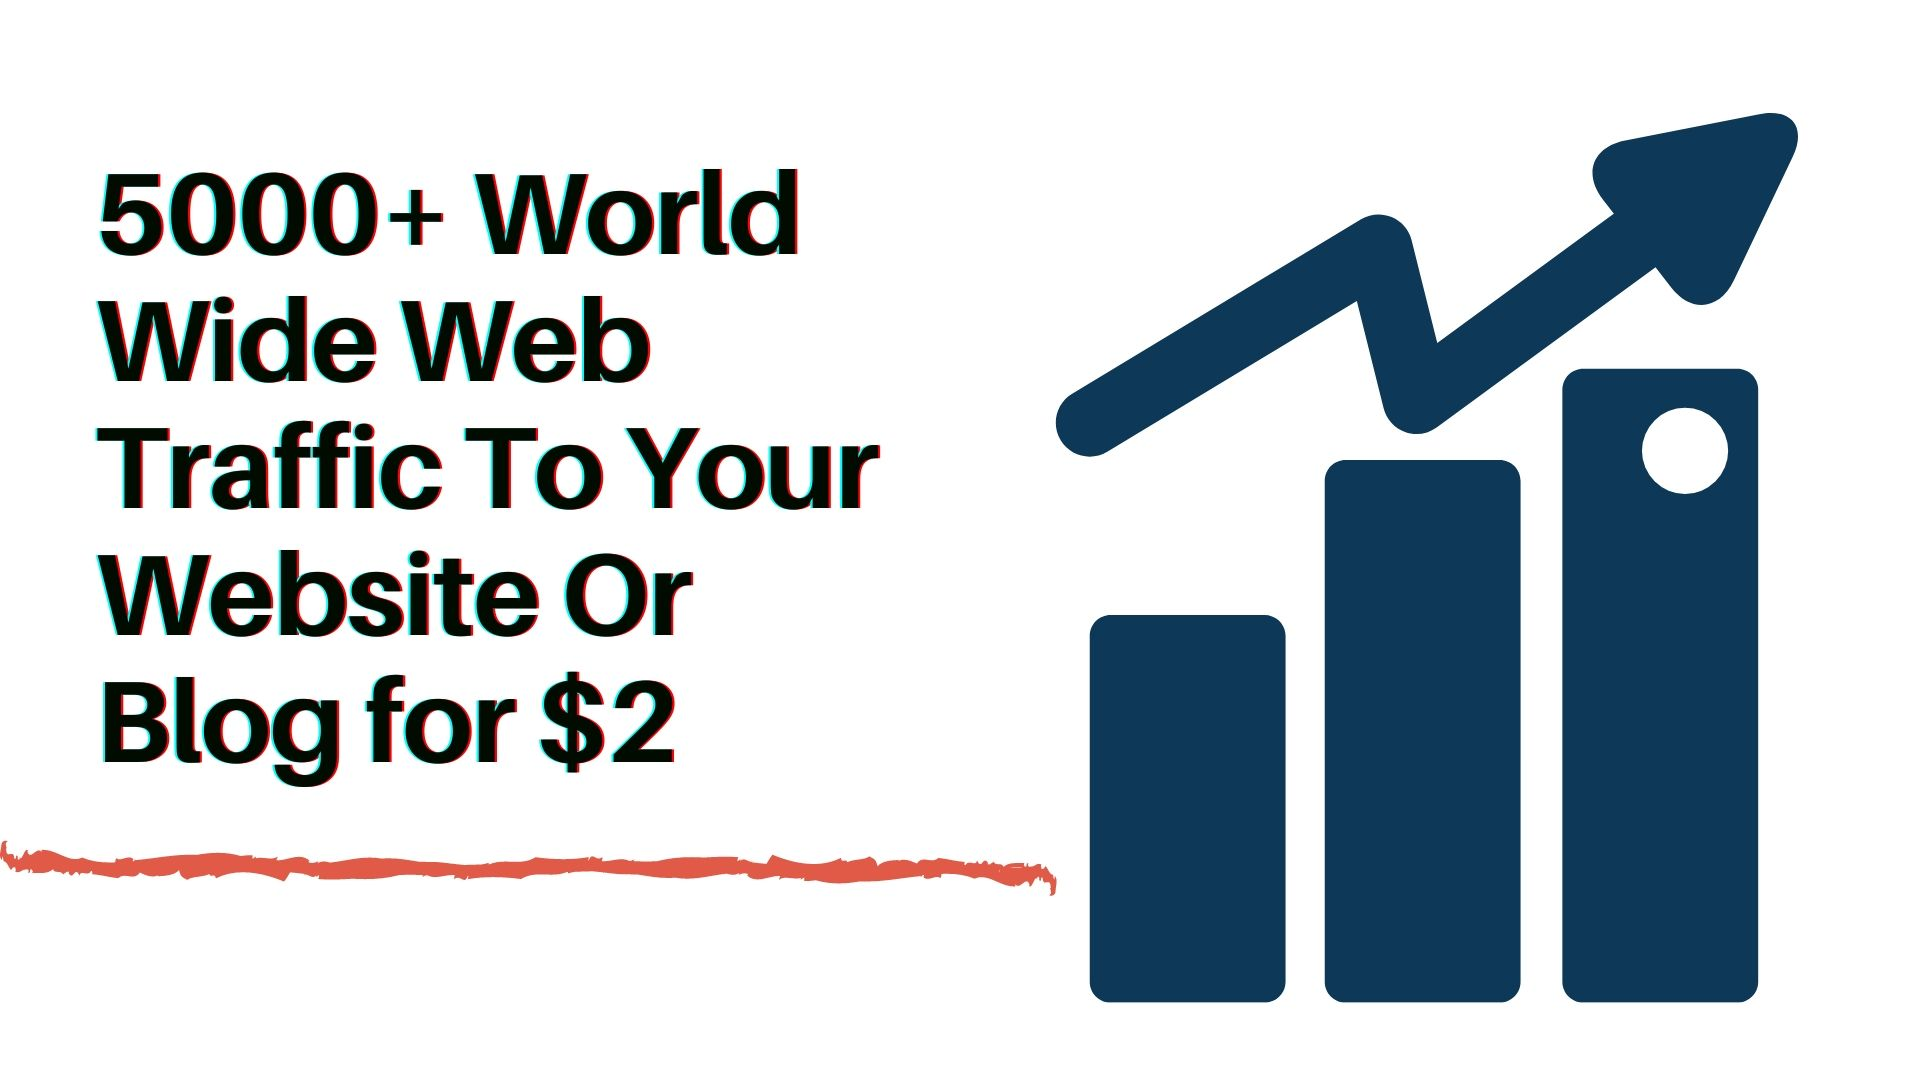 5000 plus World Wide Web Traffic for your website